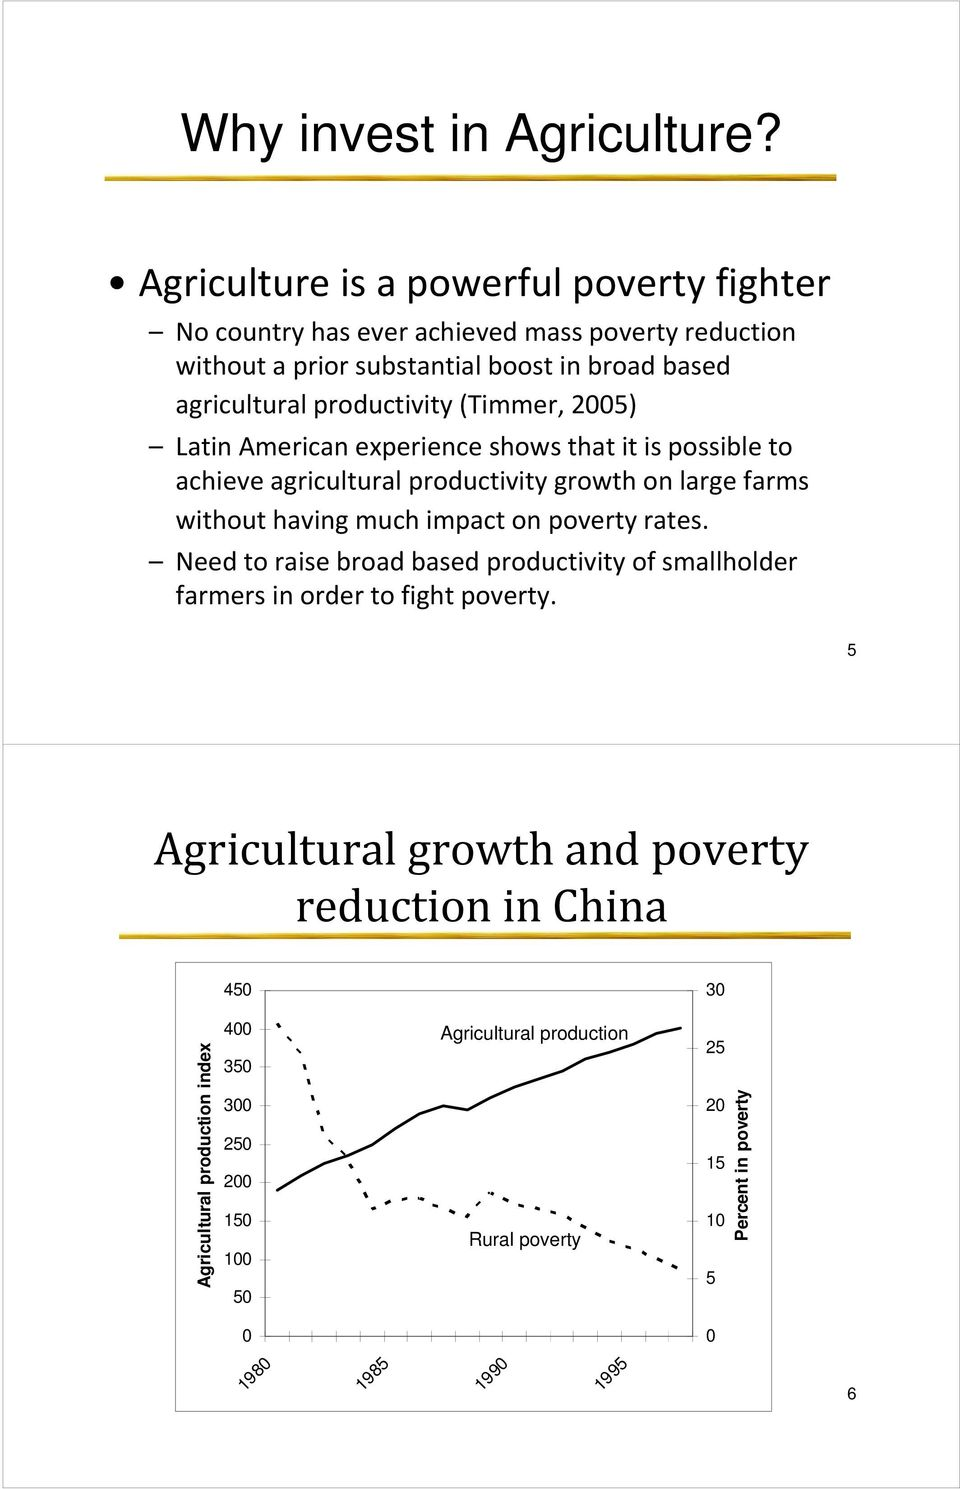 (Timmer, 2005) Latin American experience shows that it is possible to achieve agricultural productivity growth on large farms without having much impact on poverty